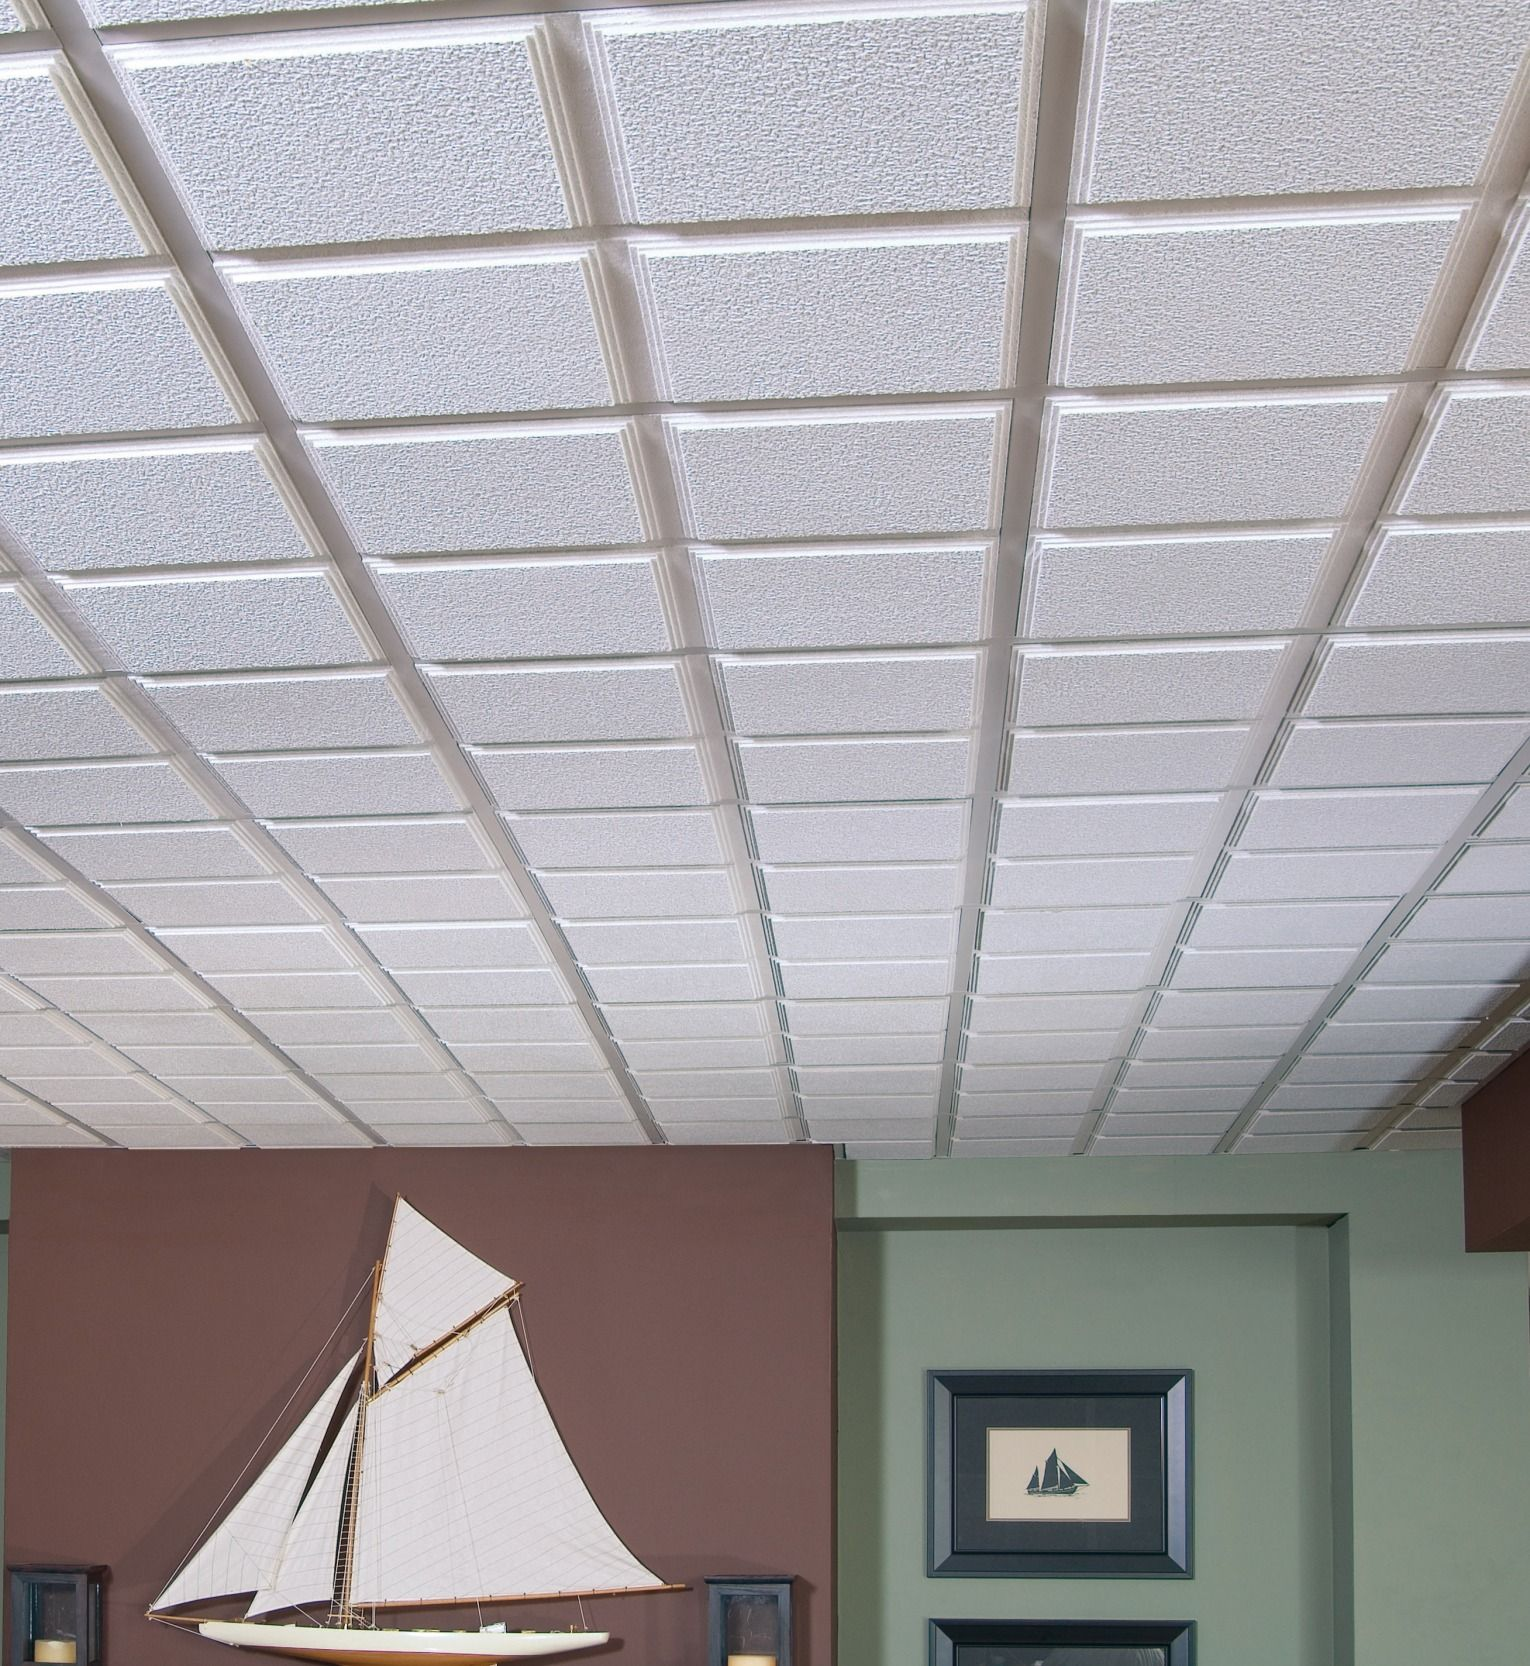 Dress Up Your Drop Ceiling Not Only Will Casade Tegular Drop Ceiling Tiles Conceal Unsightly Wiring But Th Armstrong Ceiling Basement Ceiling Dropped Ceiling